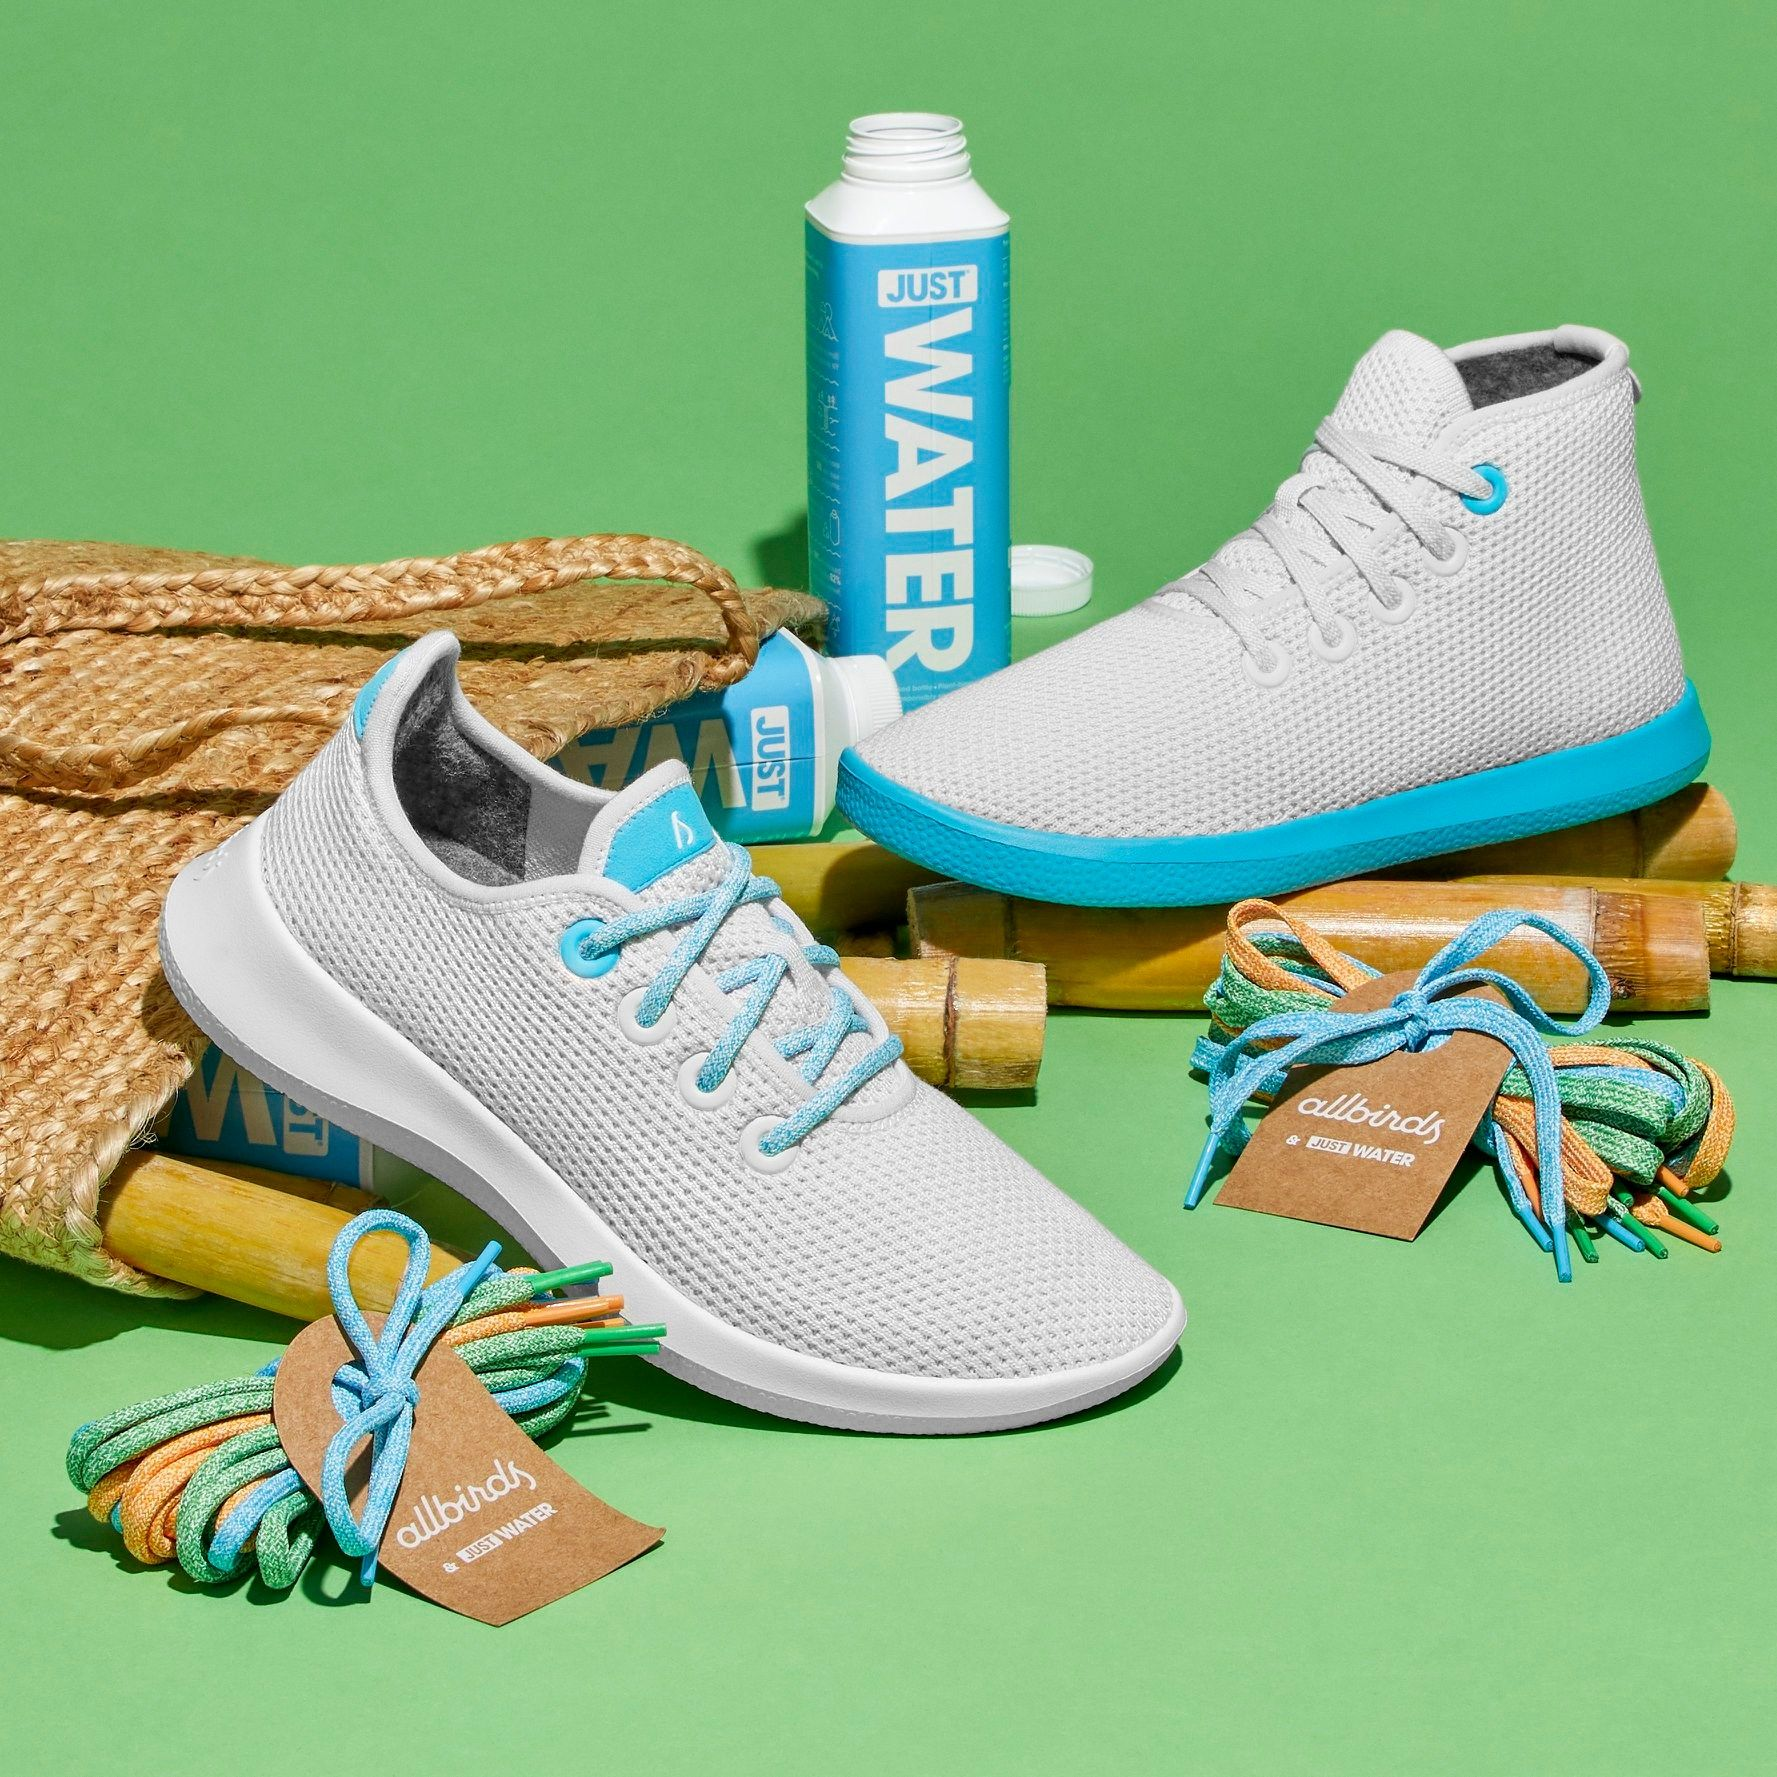 Allbirds Launches Comfy Sneakers to